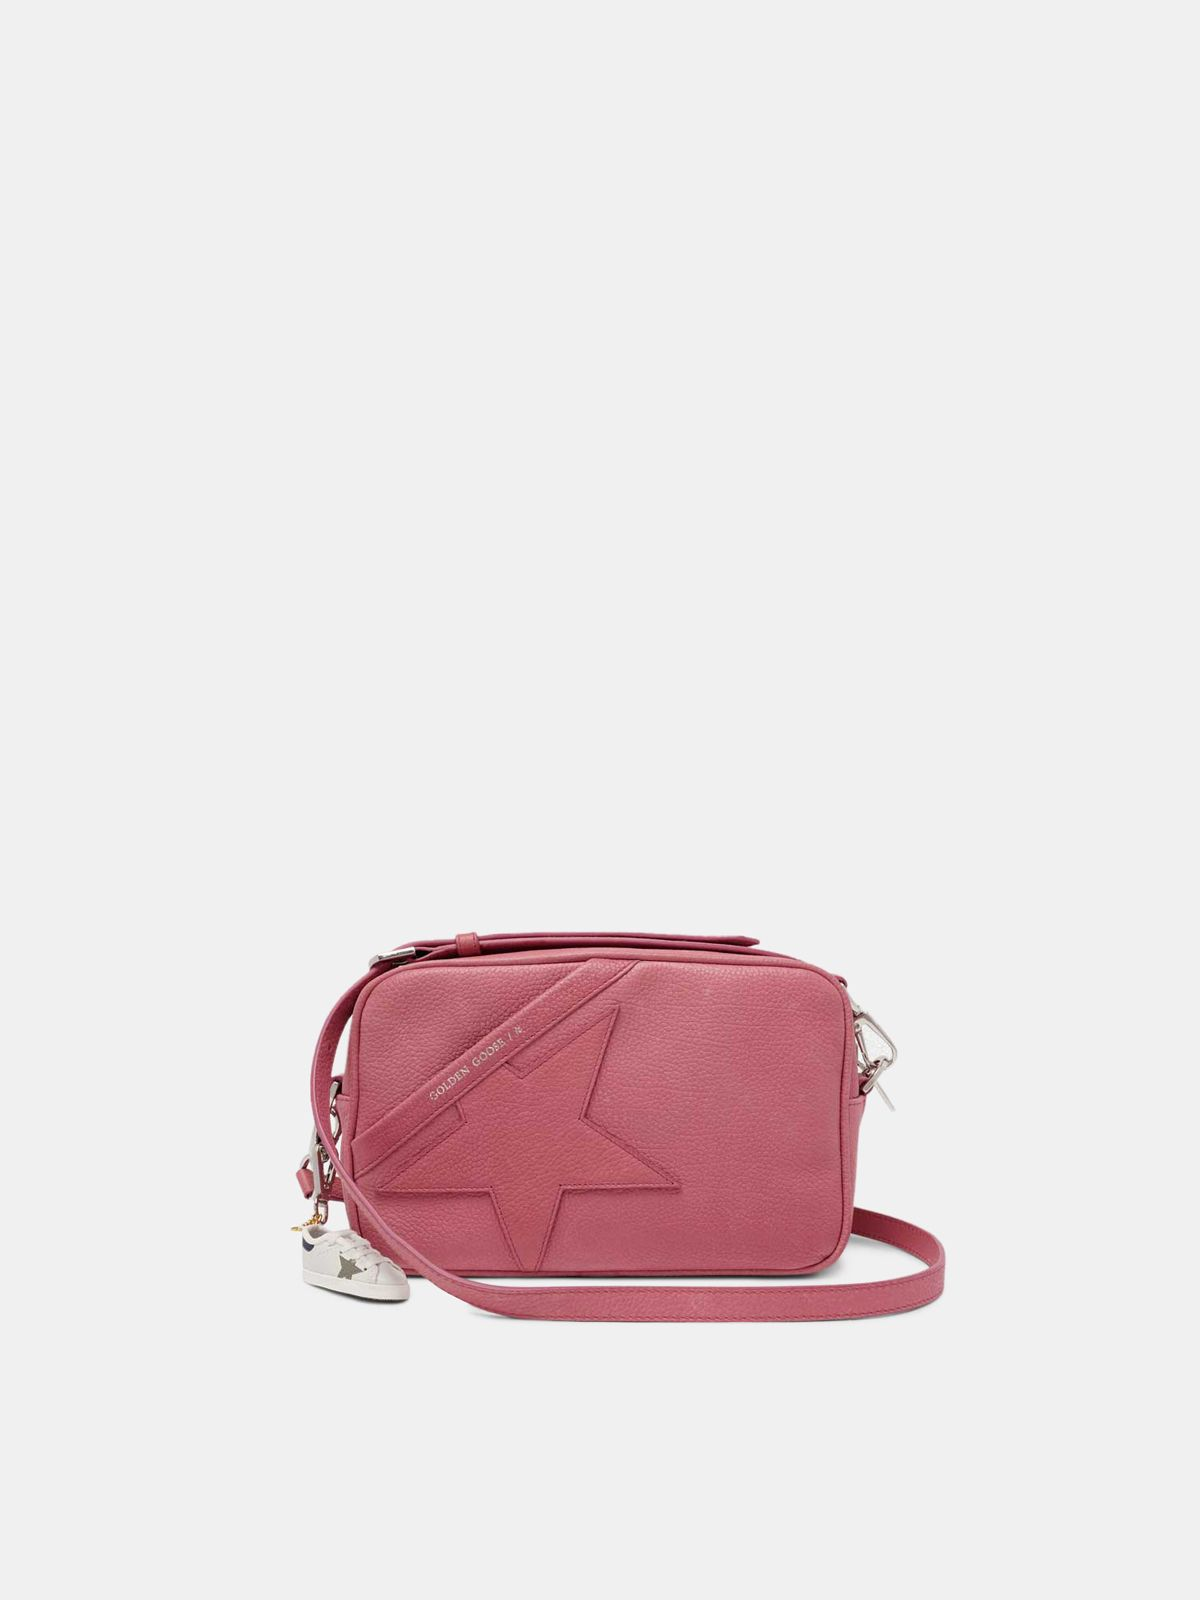 Pink Star Bag with shoulder strap made of pebbled leather